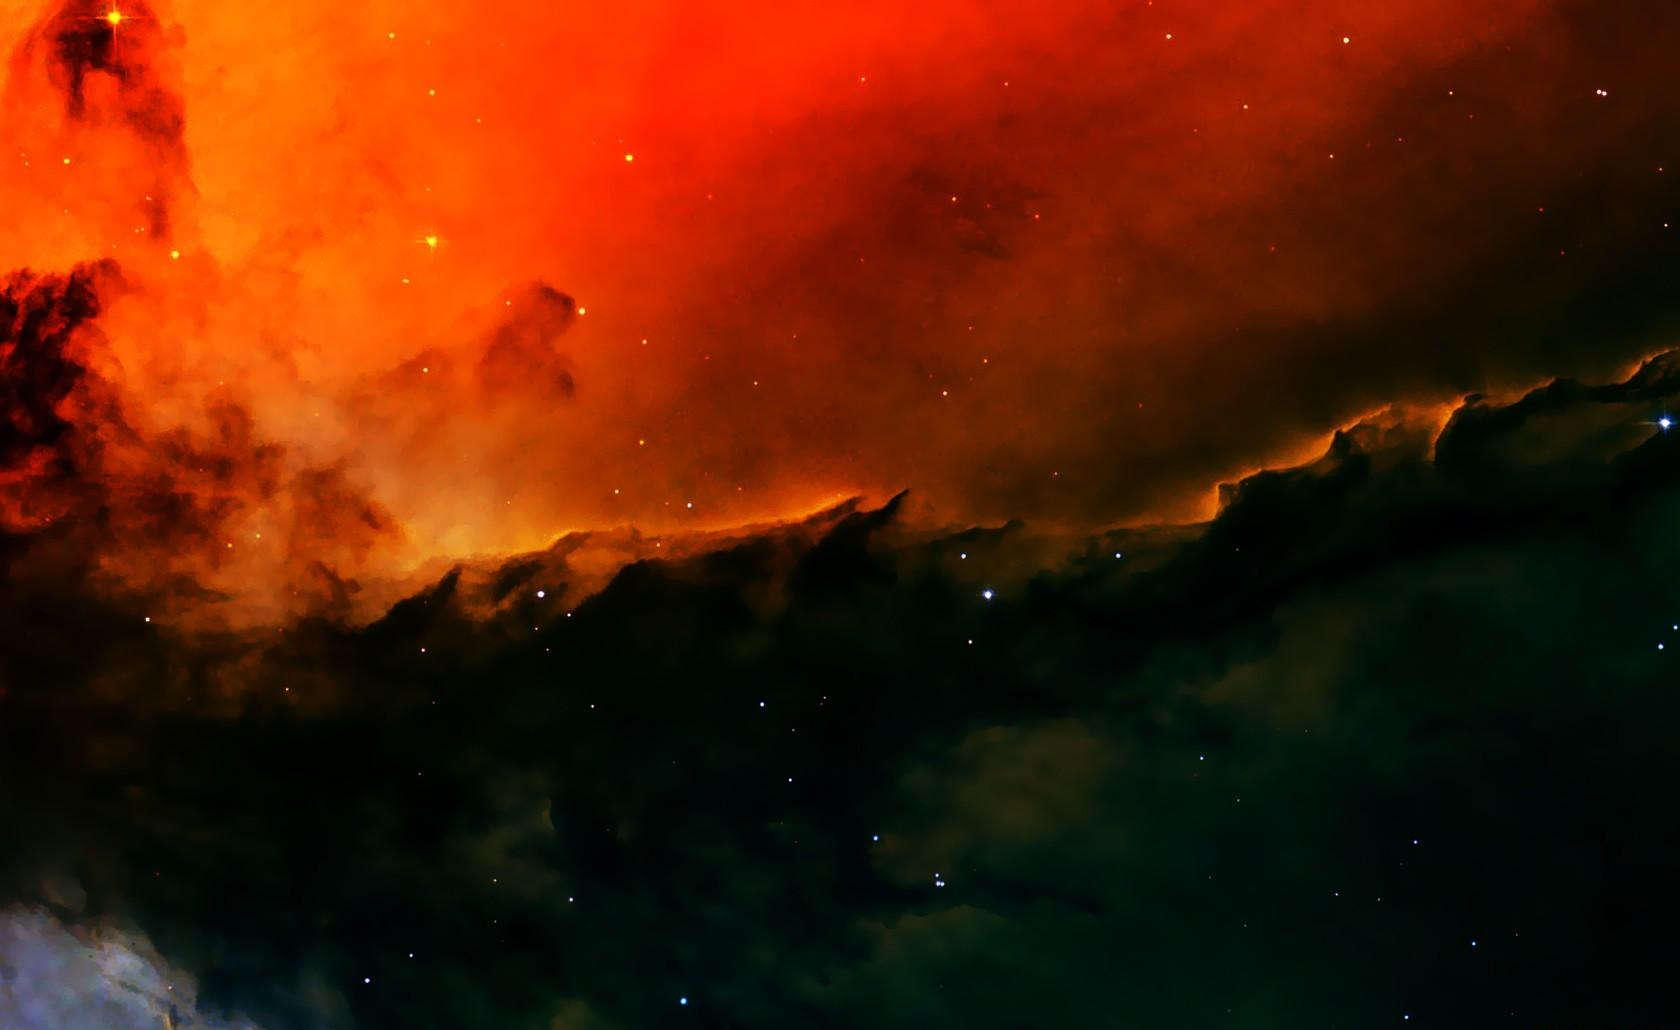 89226 download wallpaper Nebula, Universe, Galaxy, Stars screensavers and pictures for free